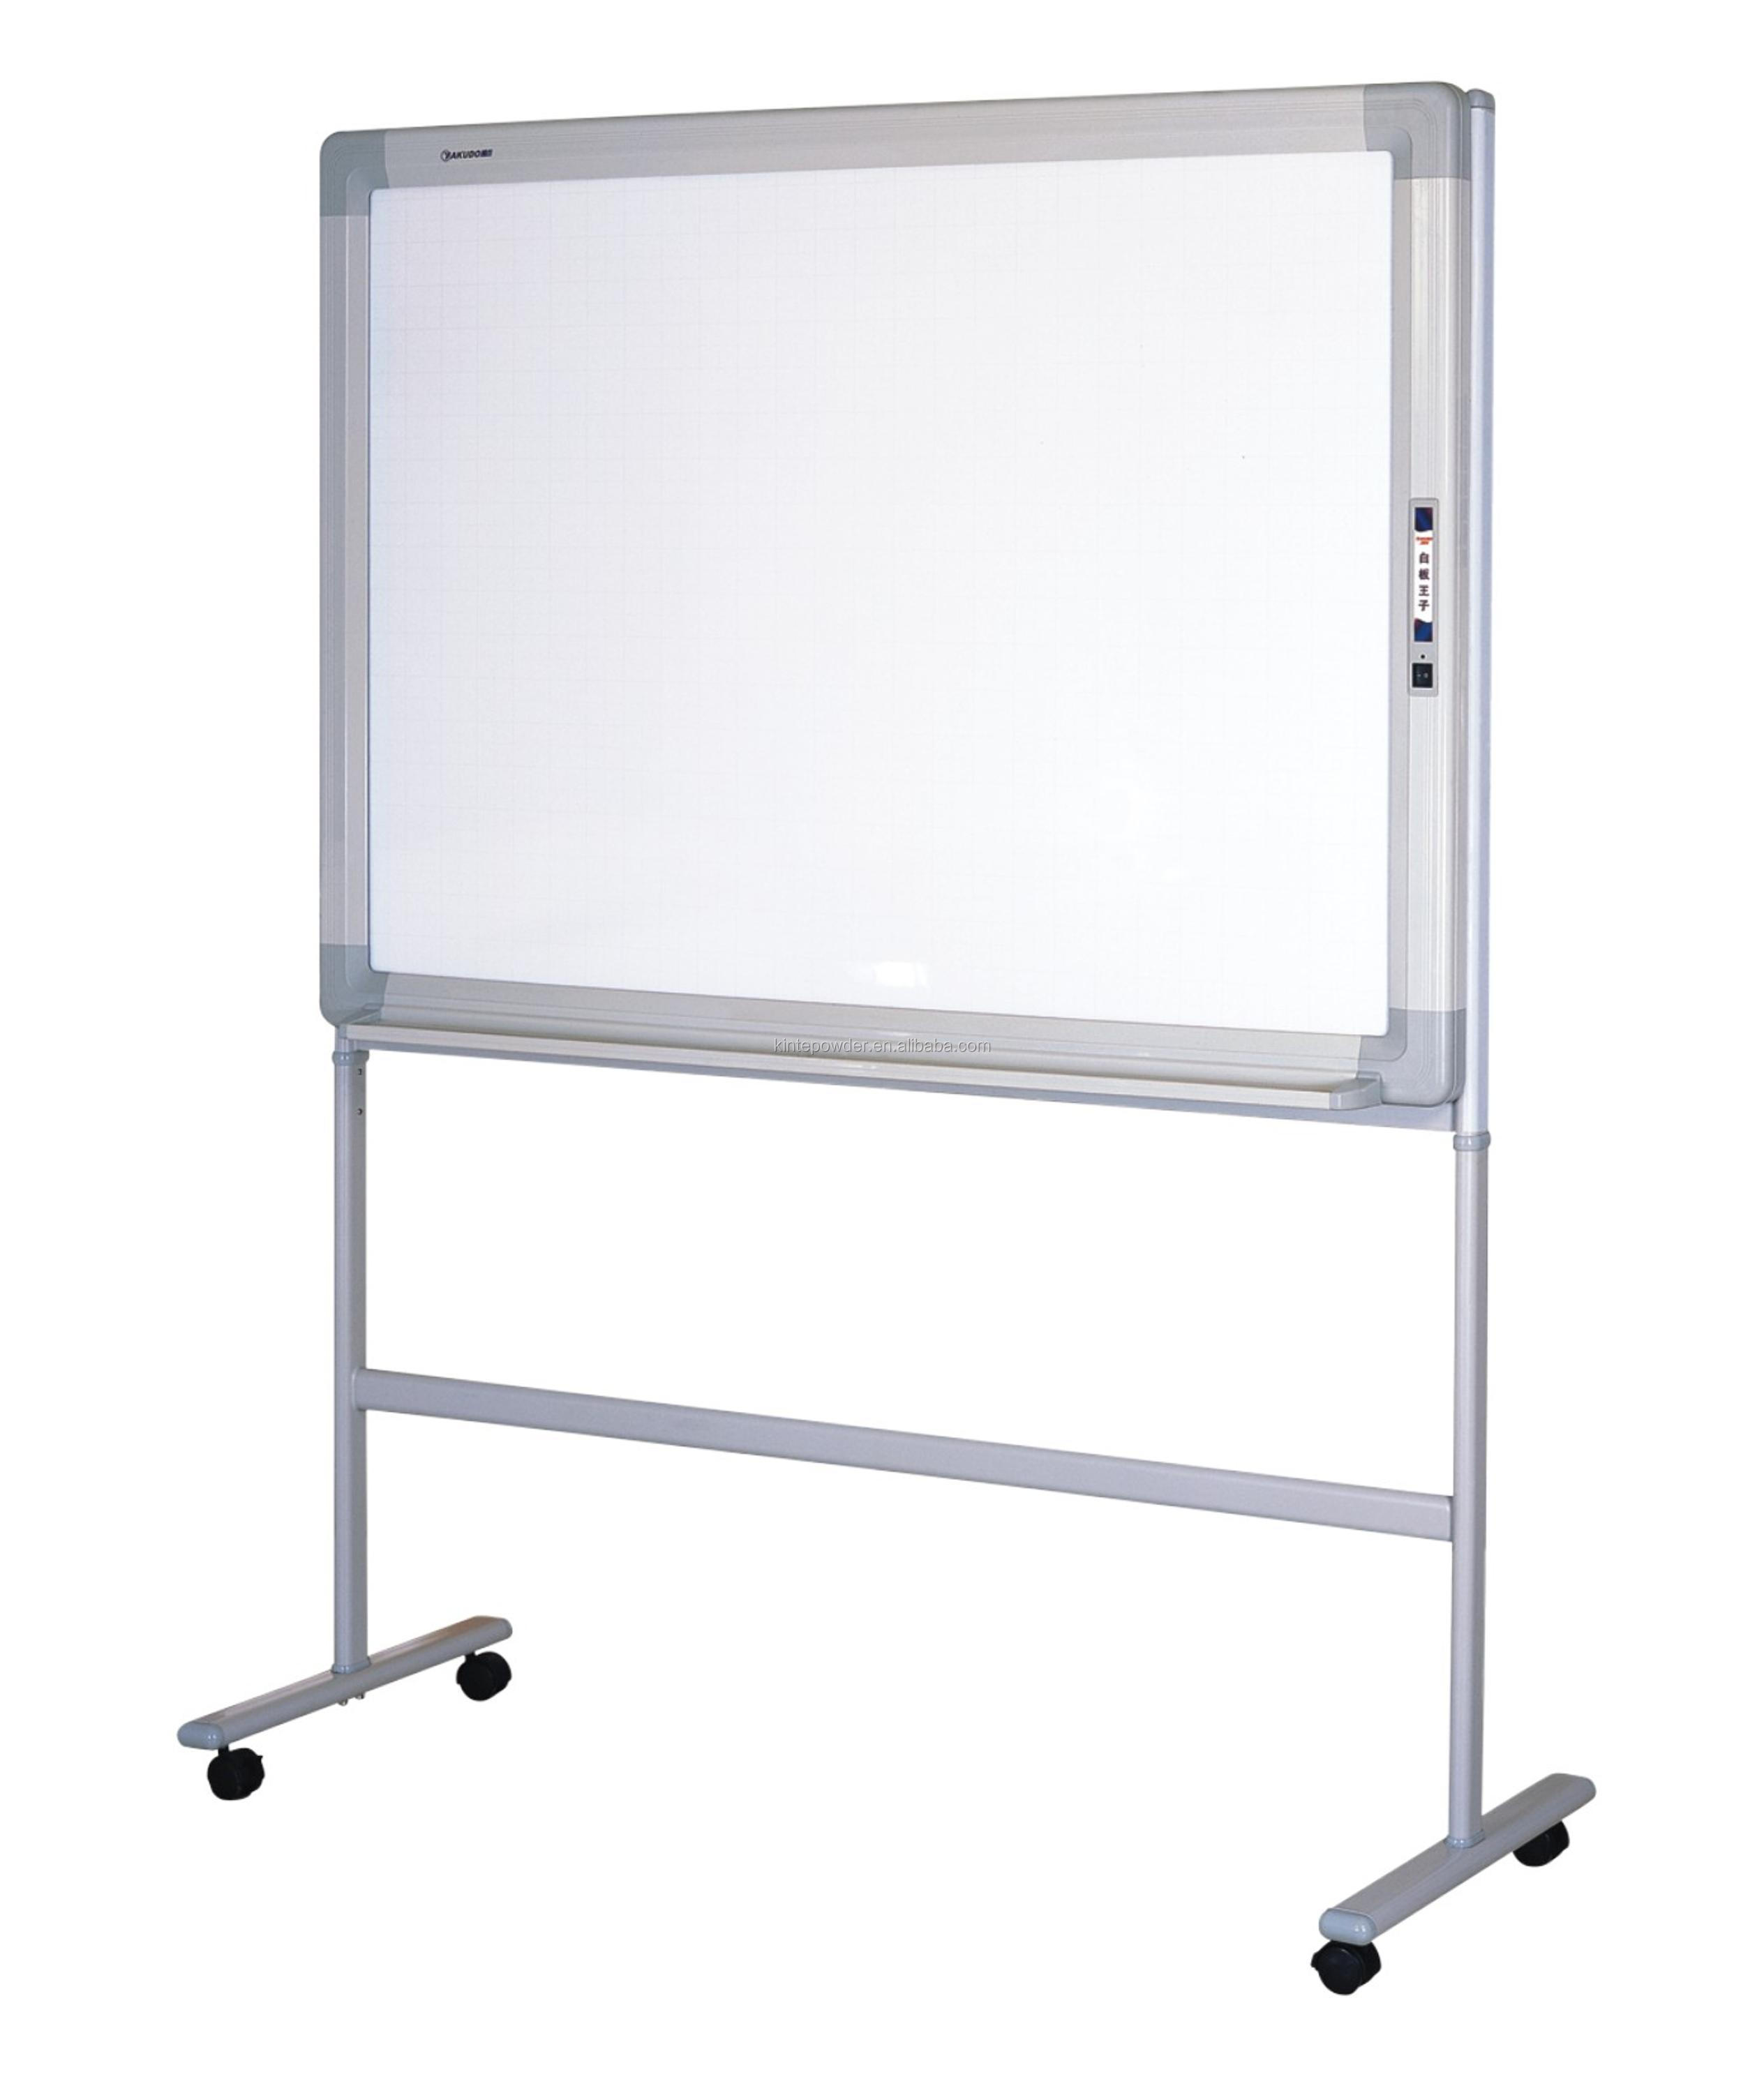 Anti graffiti powder coating writing board and sign board